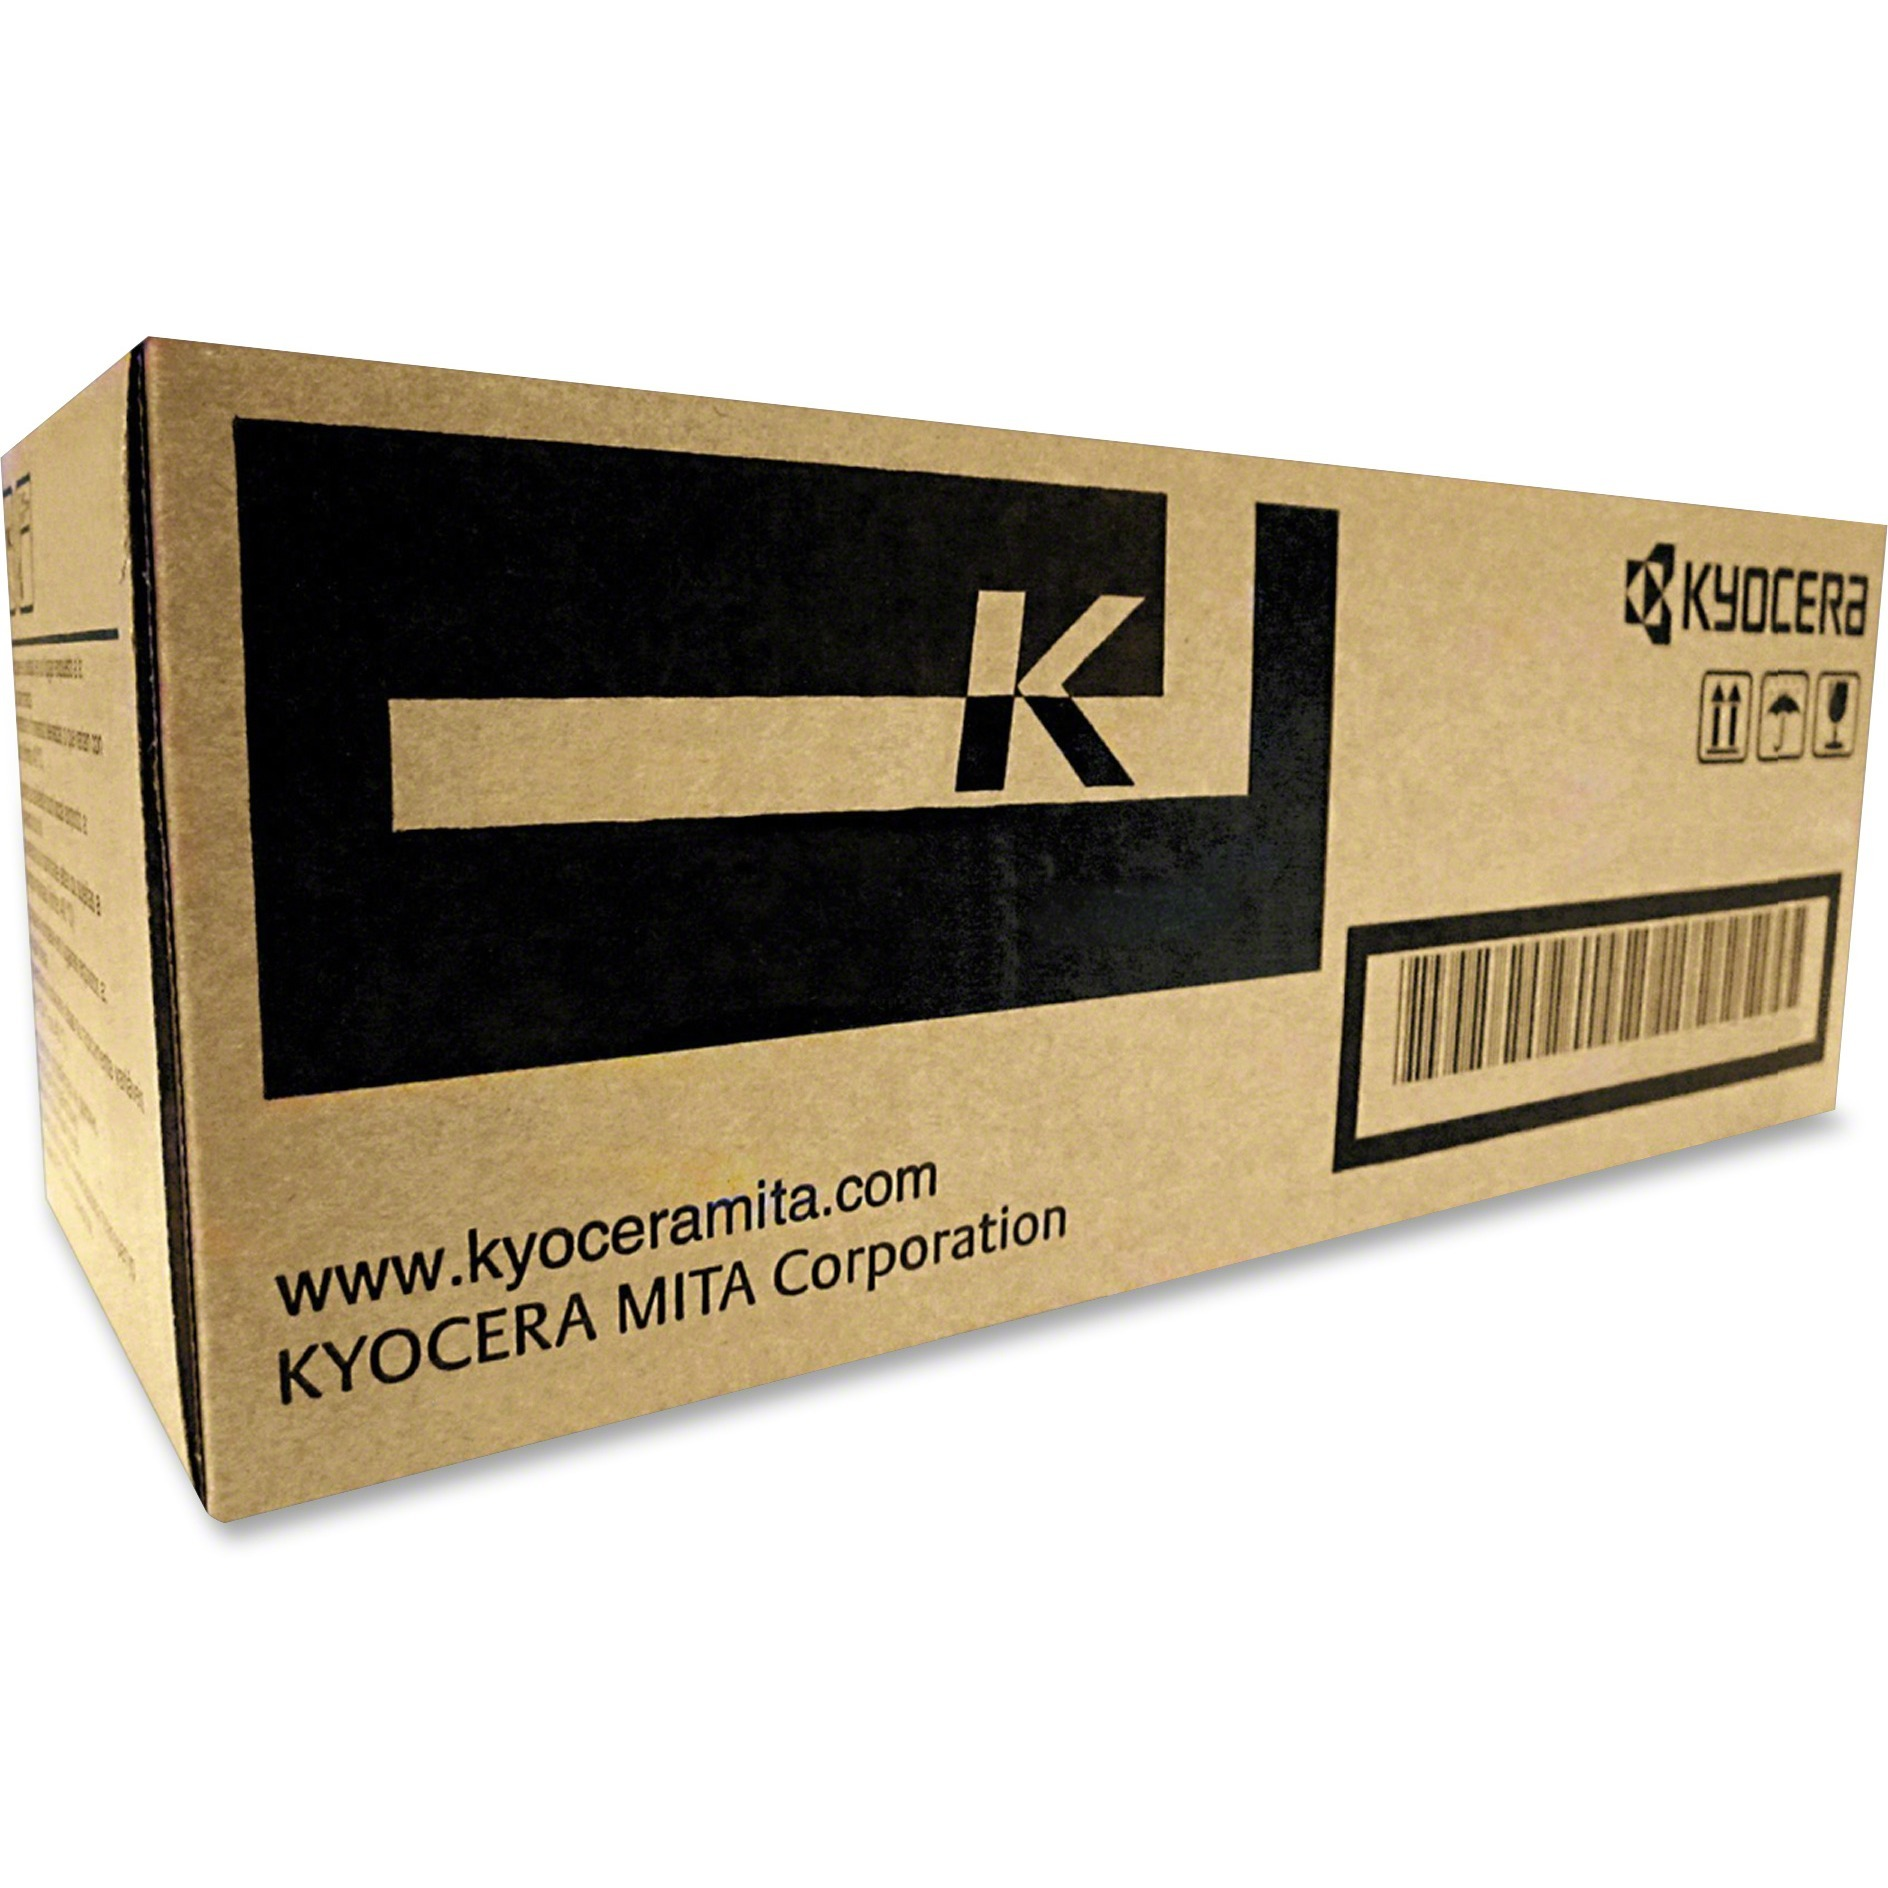 Kyocera, KYOTK867K, TK-867K Toner Cartridge, 1 Each